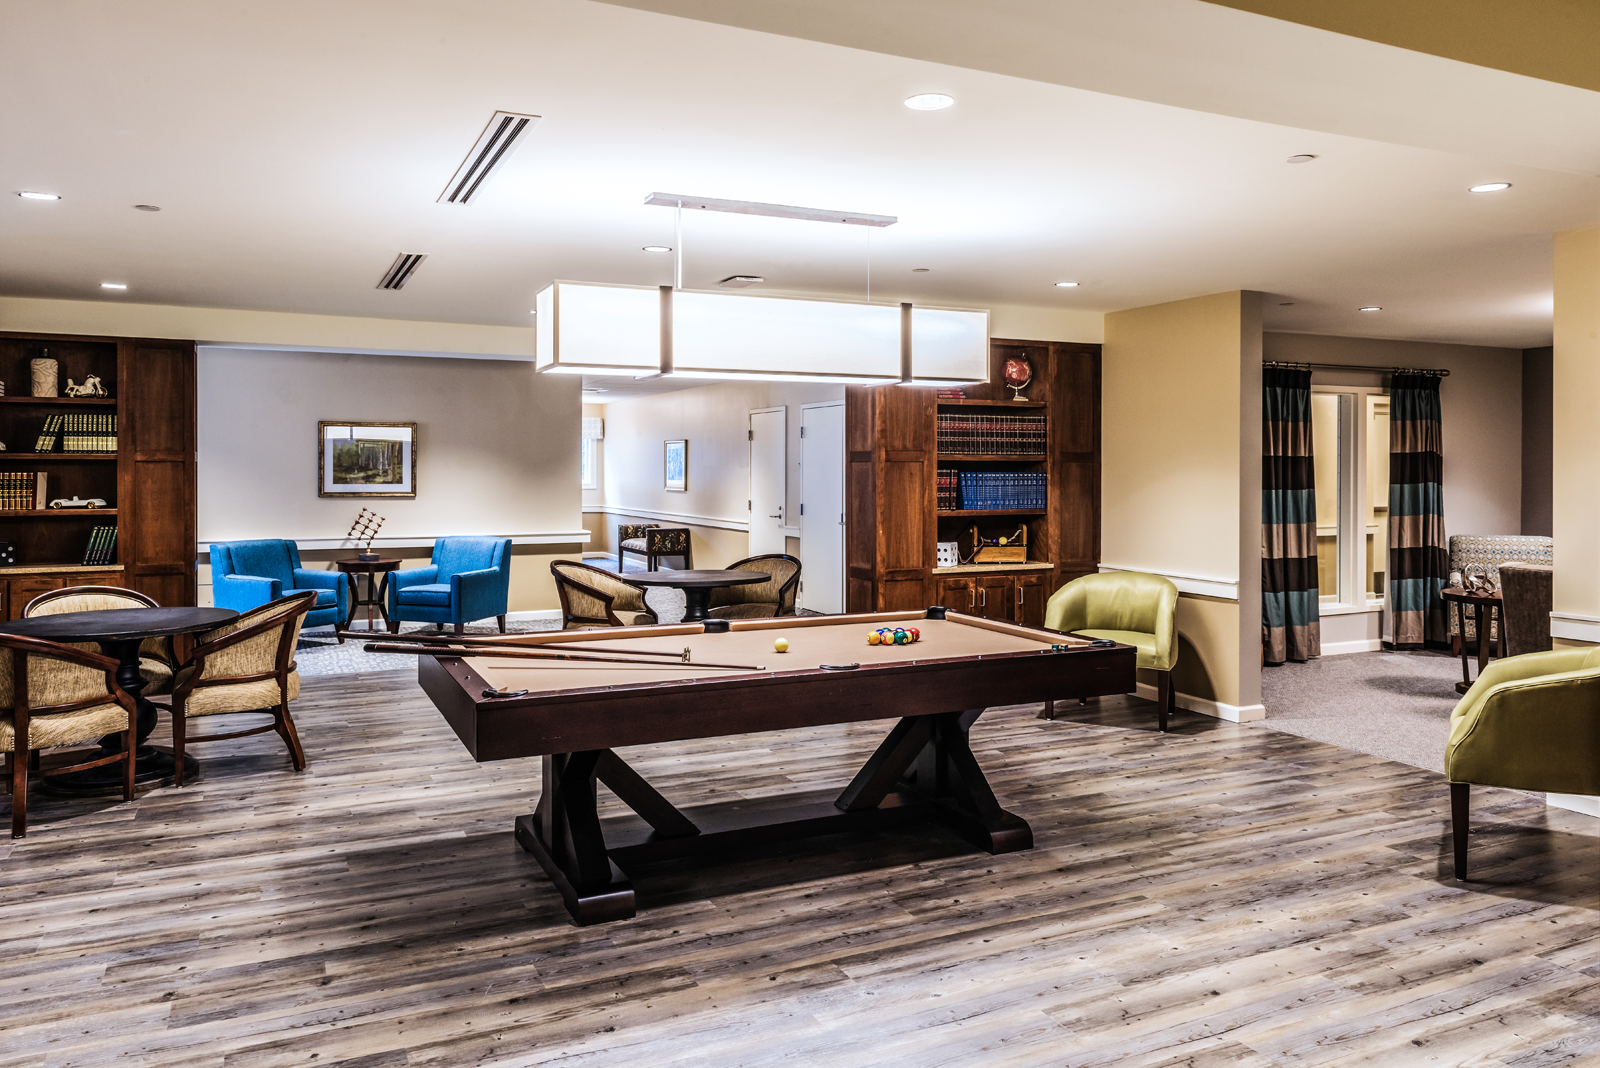 Engaging game room interior design for Massachusetts assisted living community.